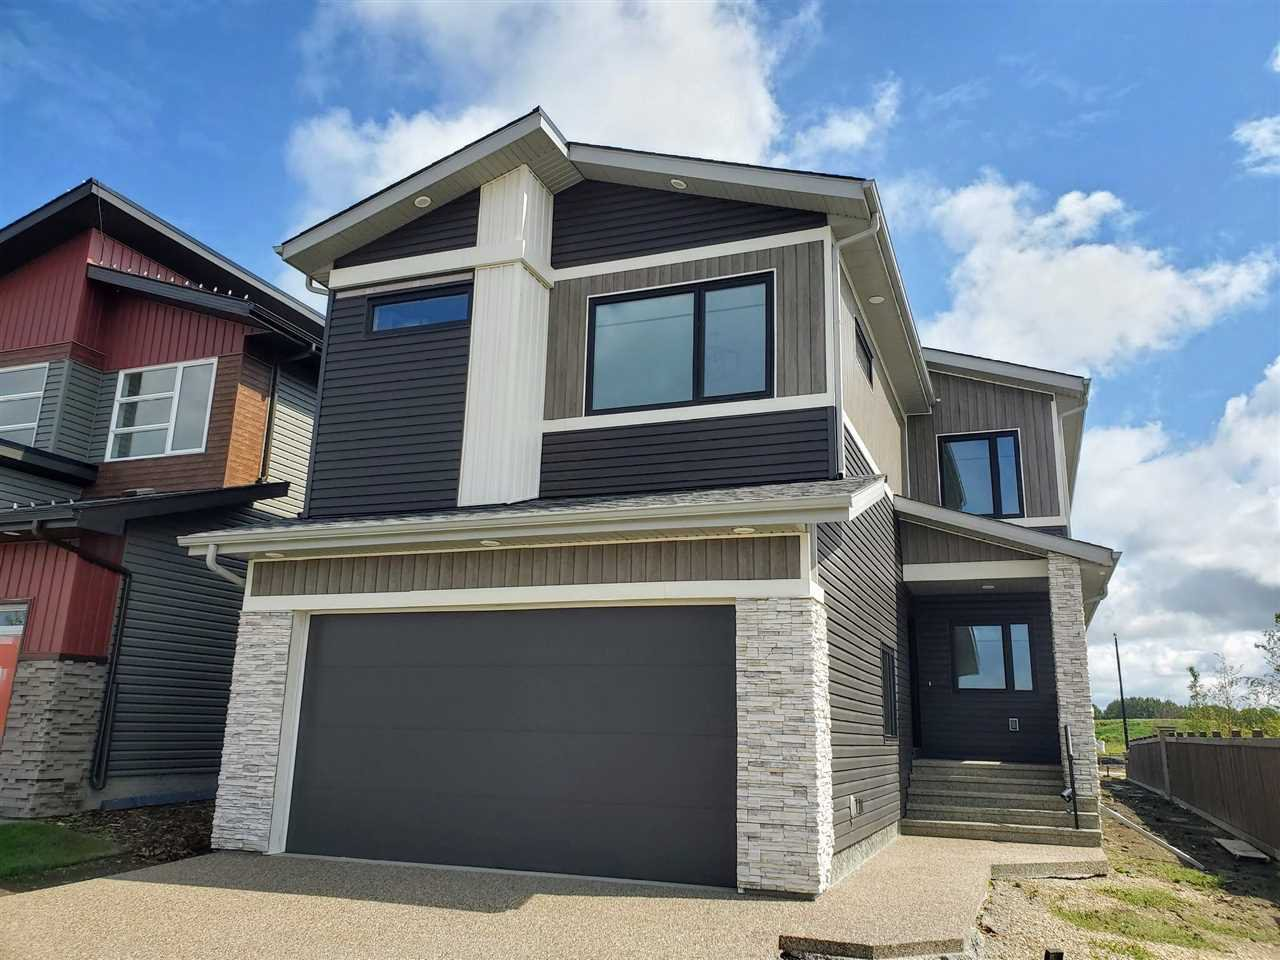 Main Photo: 2 Elwyck Gate: Spruce Grove House for sale : MLS®# E4168269